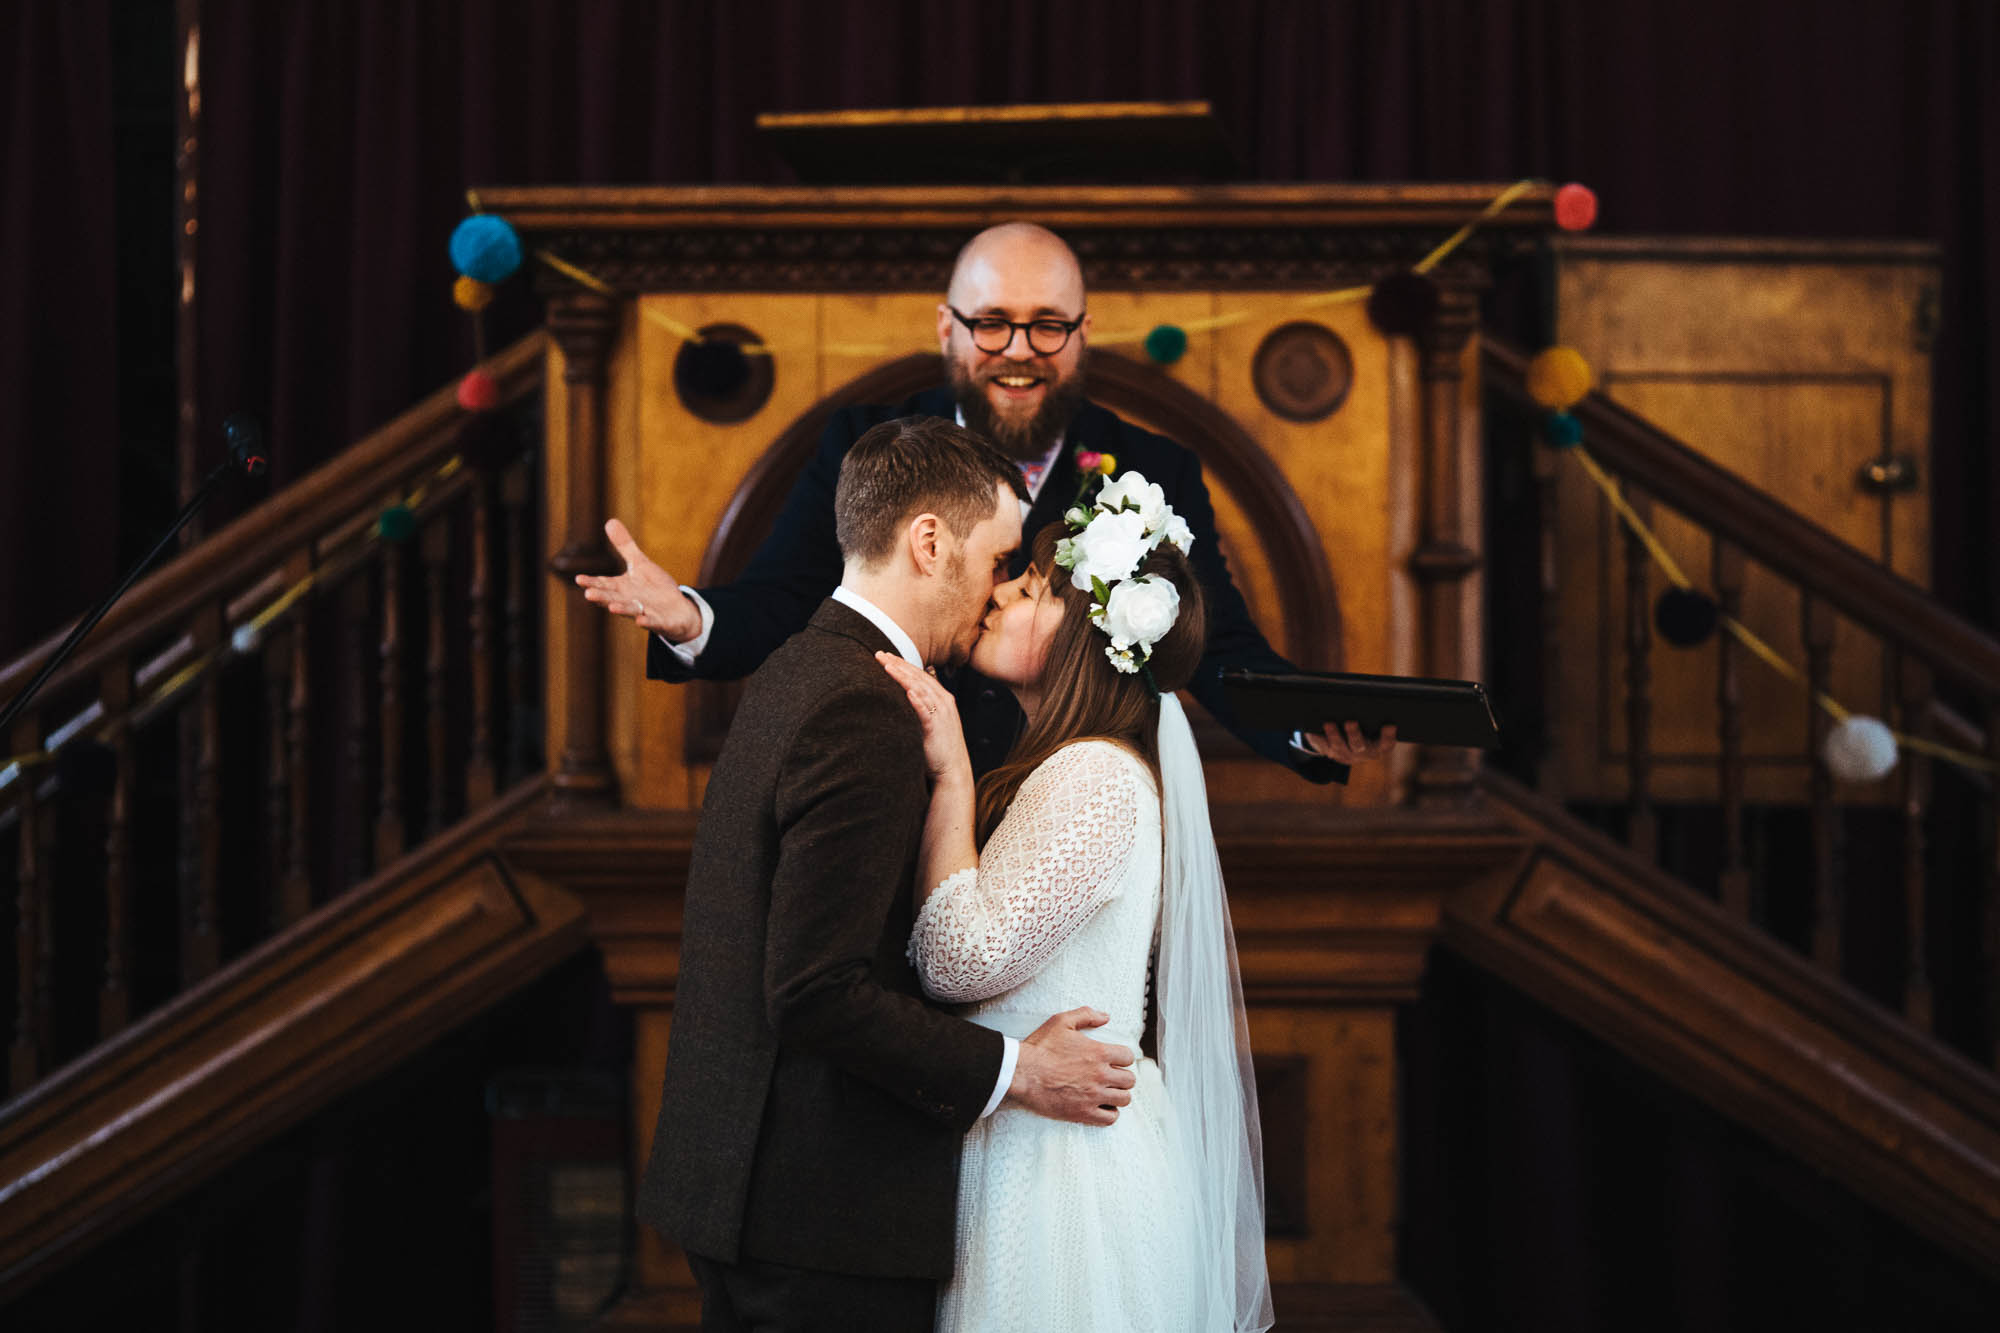 Hackney Round Chapel wedding ceremony